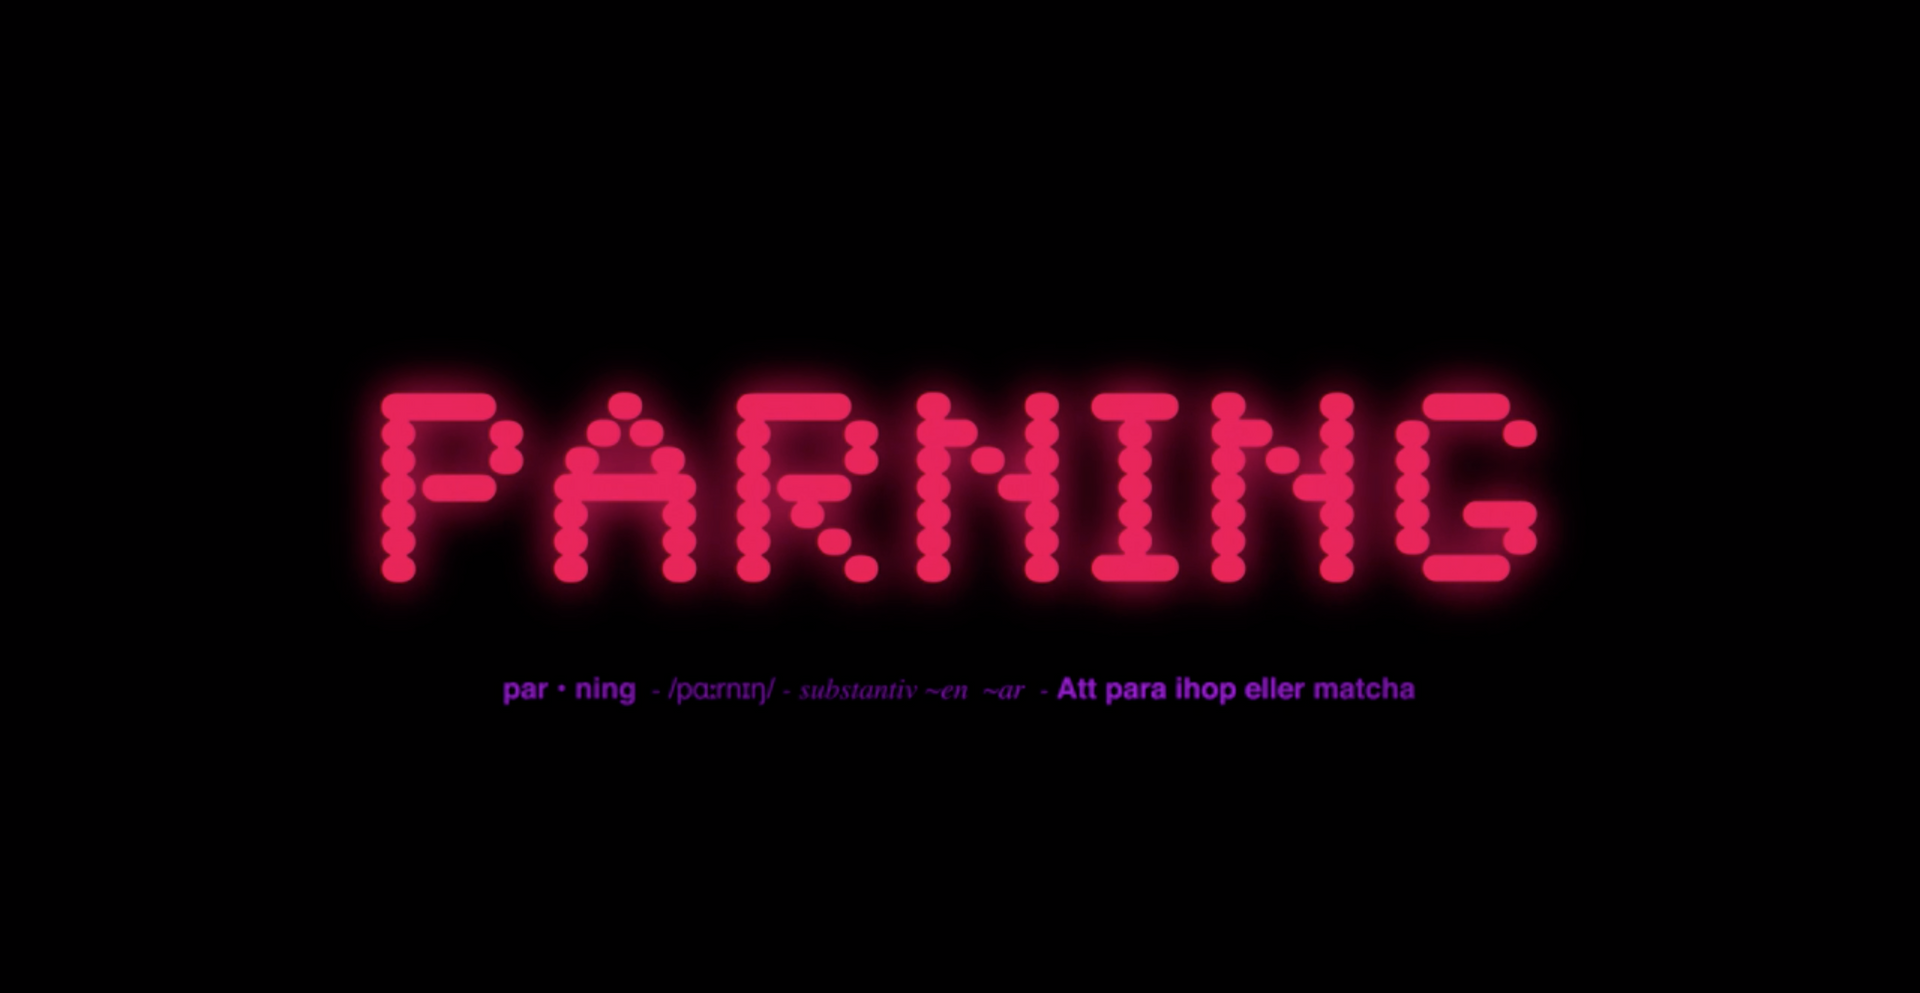 Parning (by Lina Maria Mannheimer)